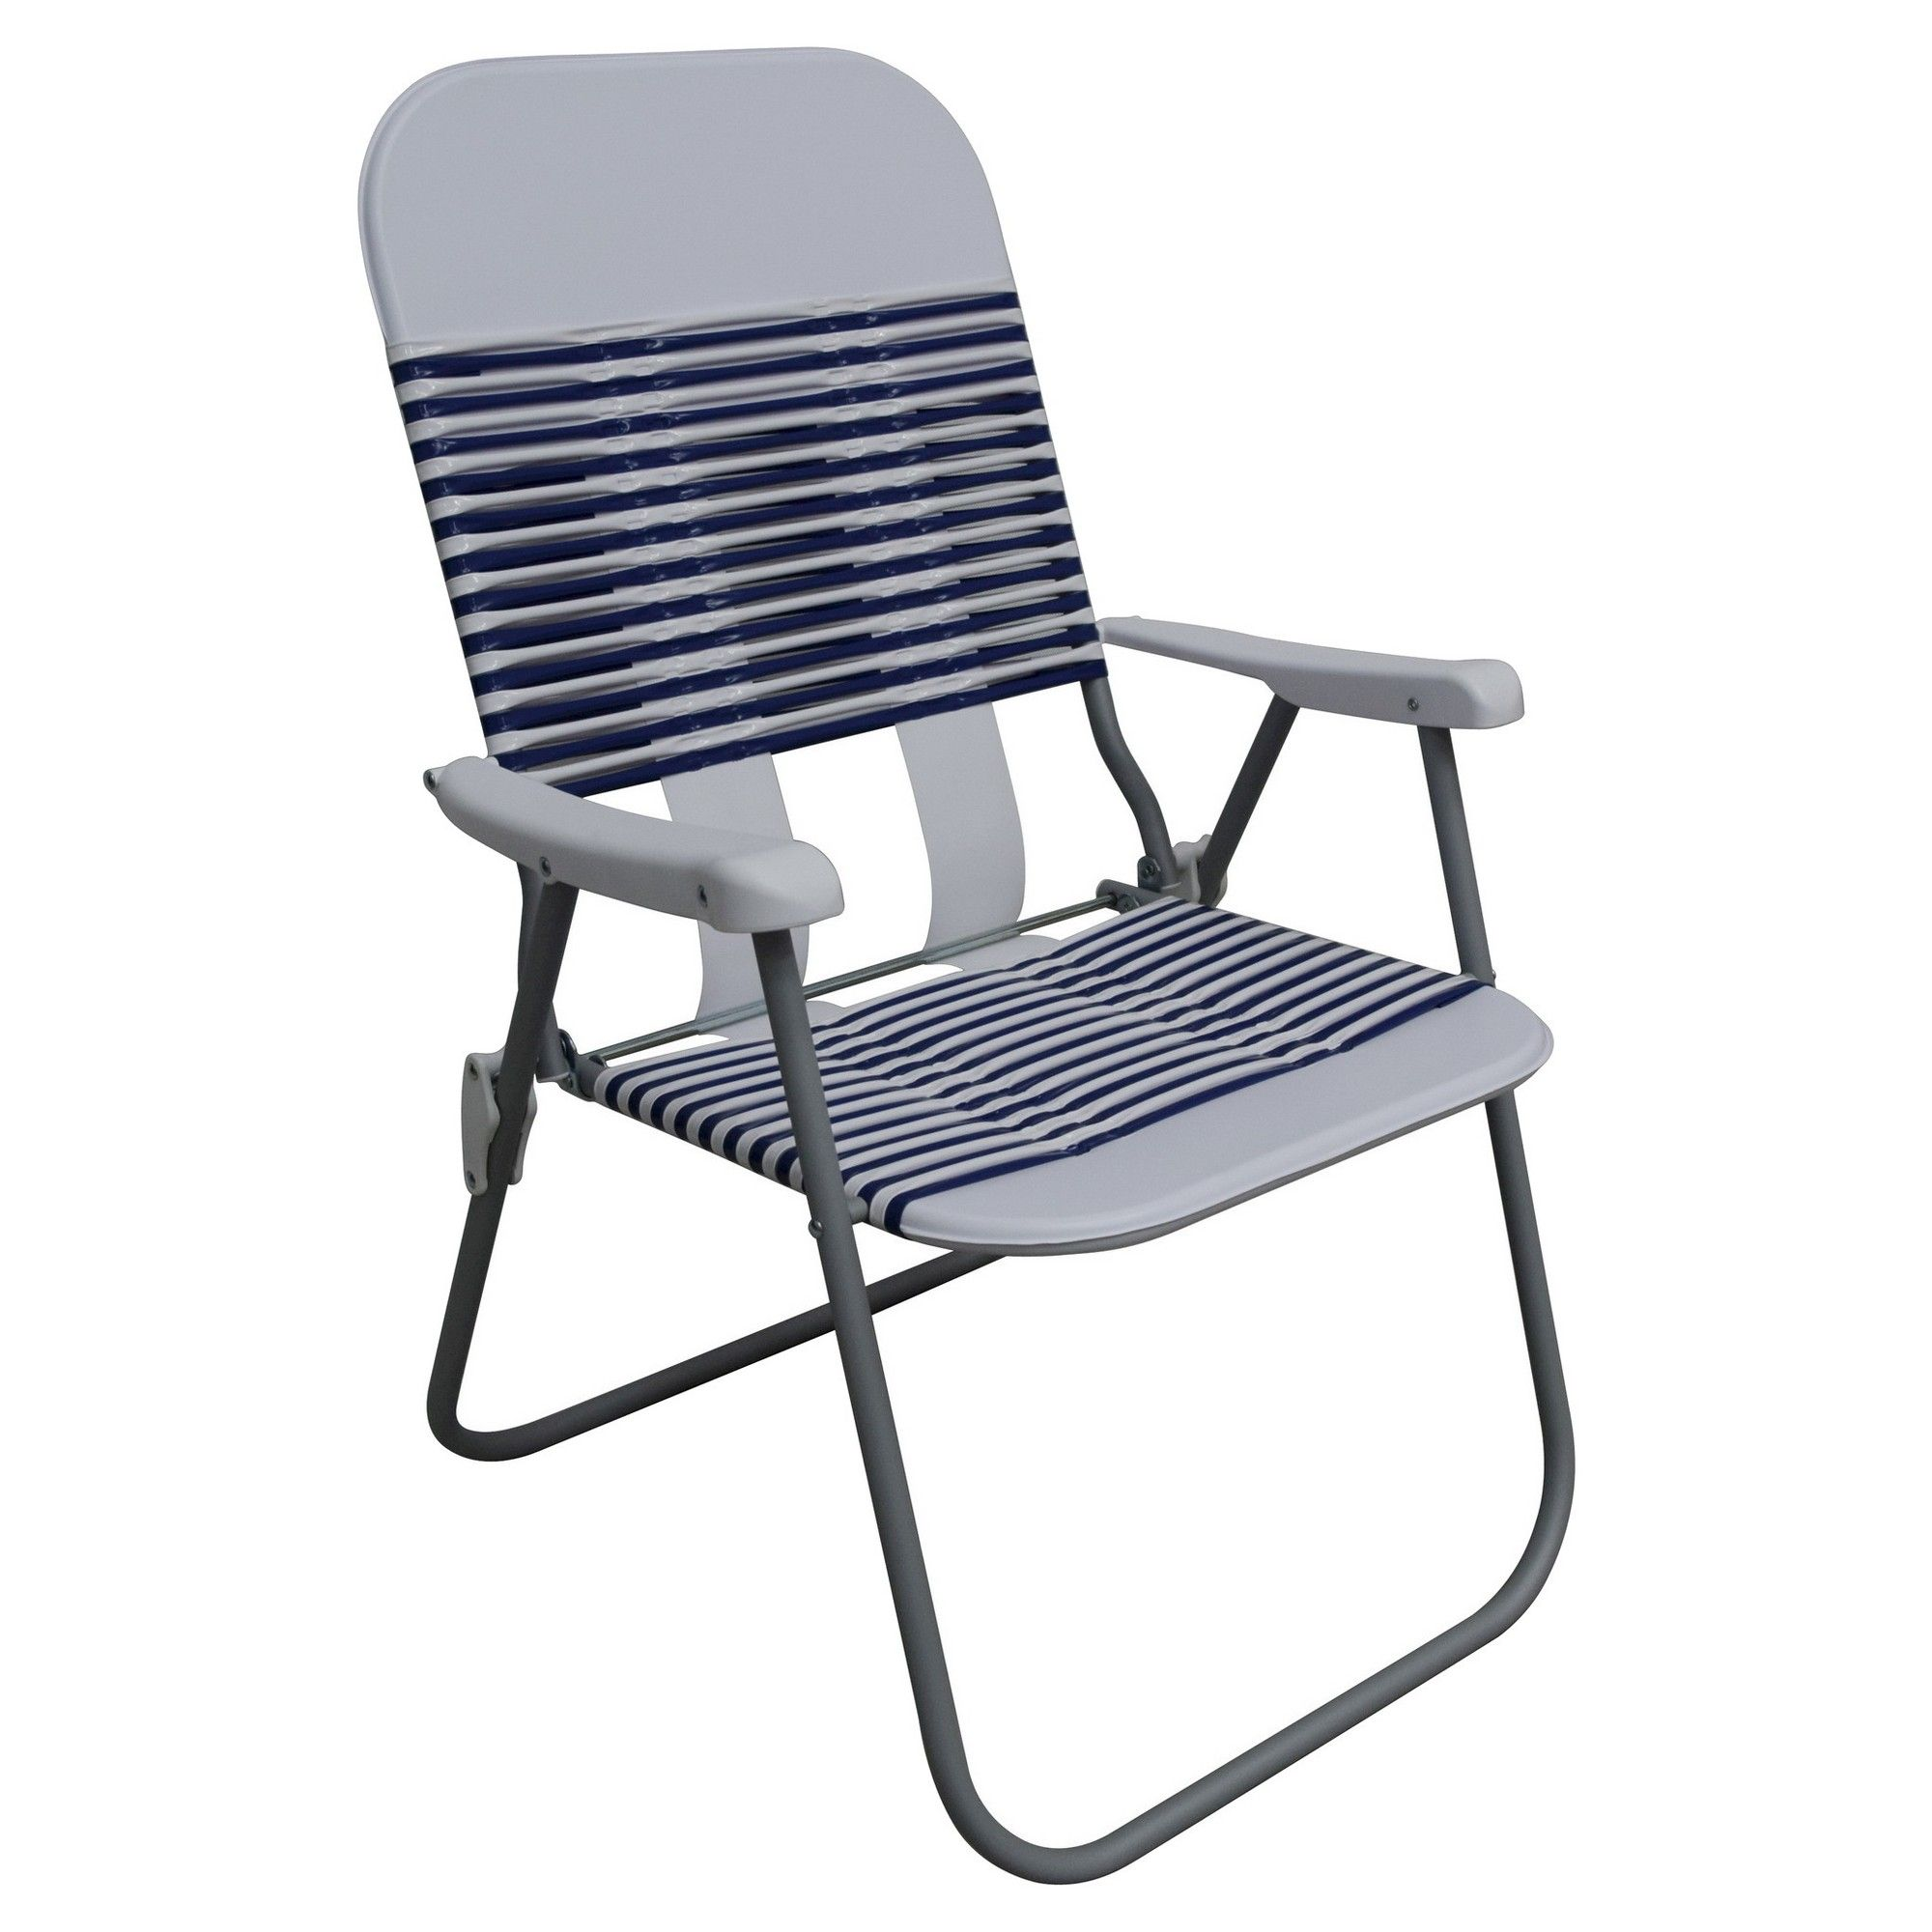 Fantastic Jelly Folding Beach Chair Blue White Room Essentials Gmtry Best Dining Table And Chair Ideas Images Gmtryco